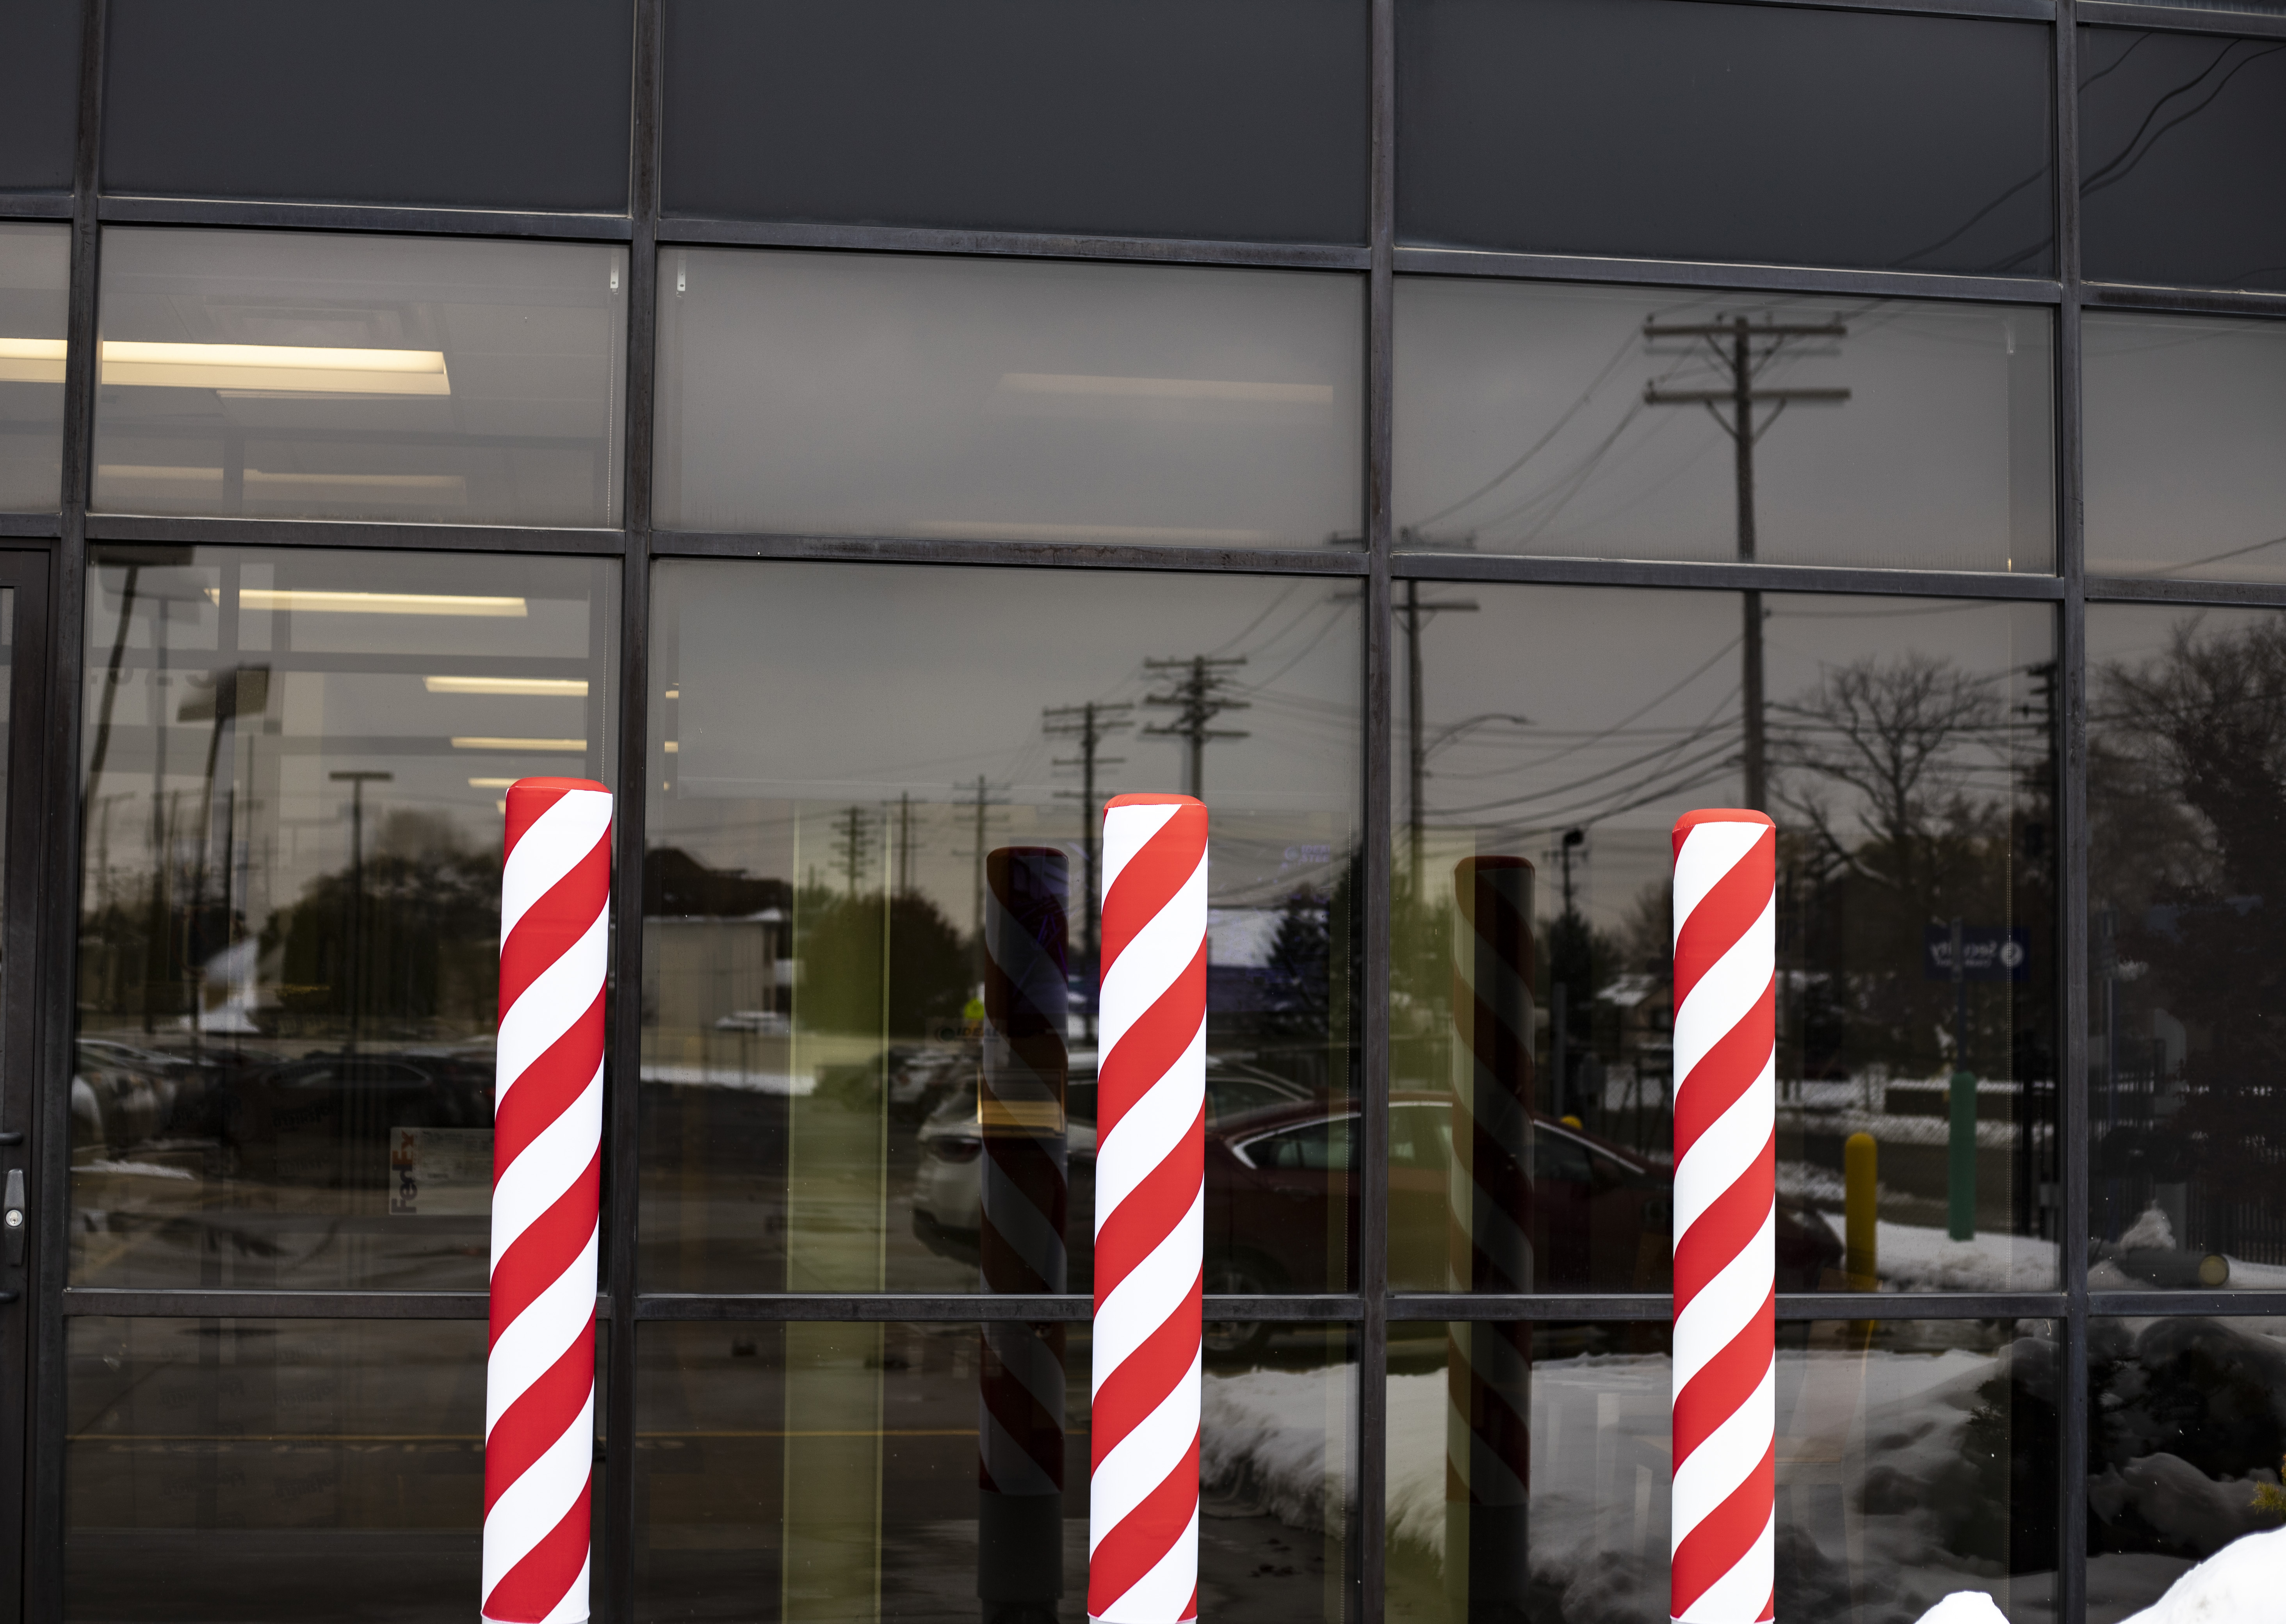 Ideal Shield's Candy Cane AdShield Fabric Bollard Covers over Flat Top Bollard Covers